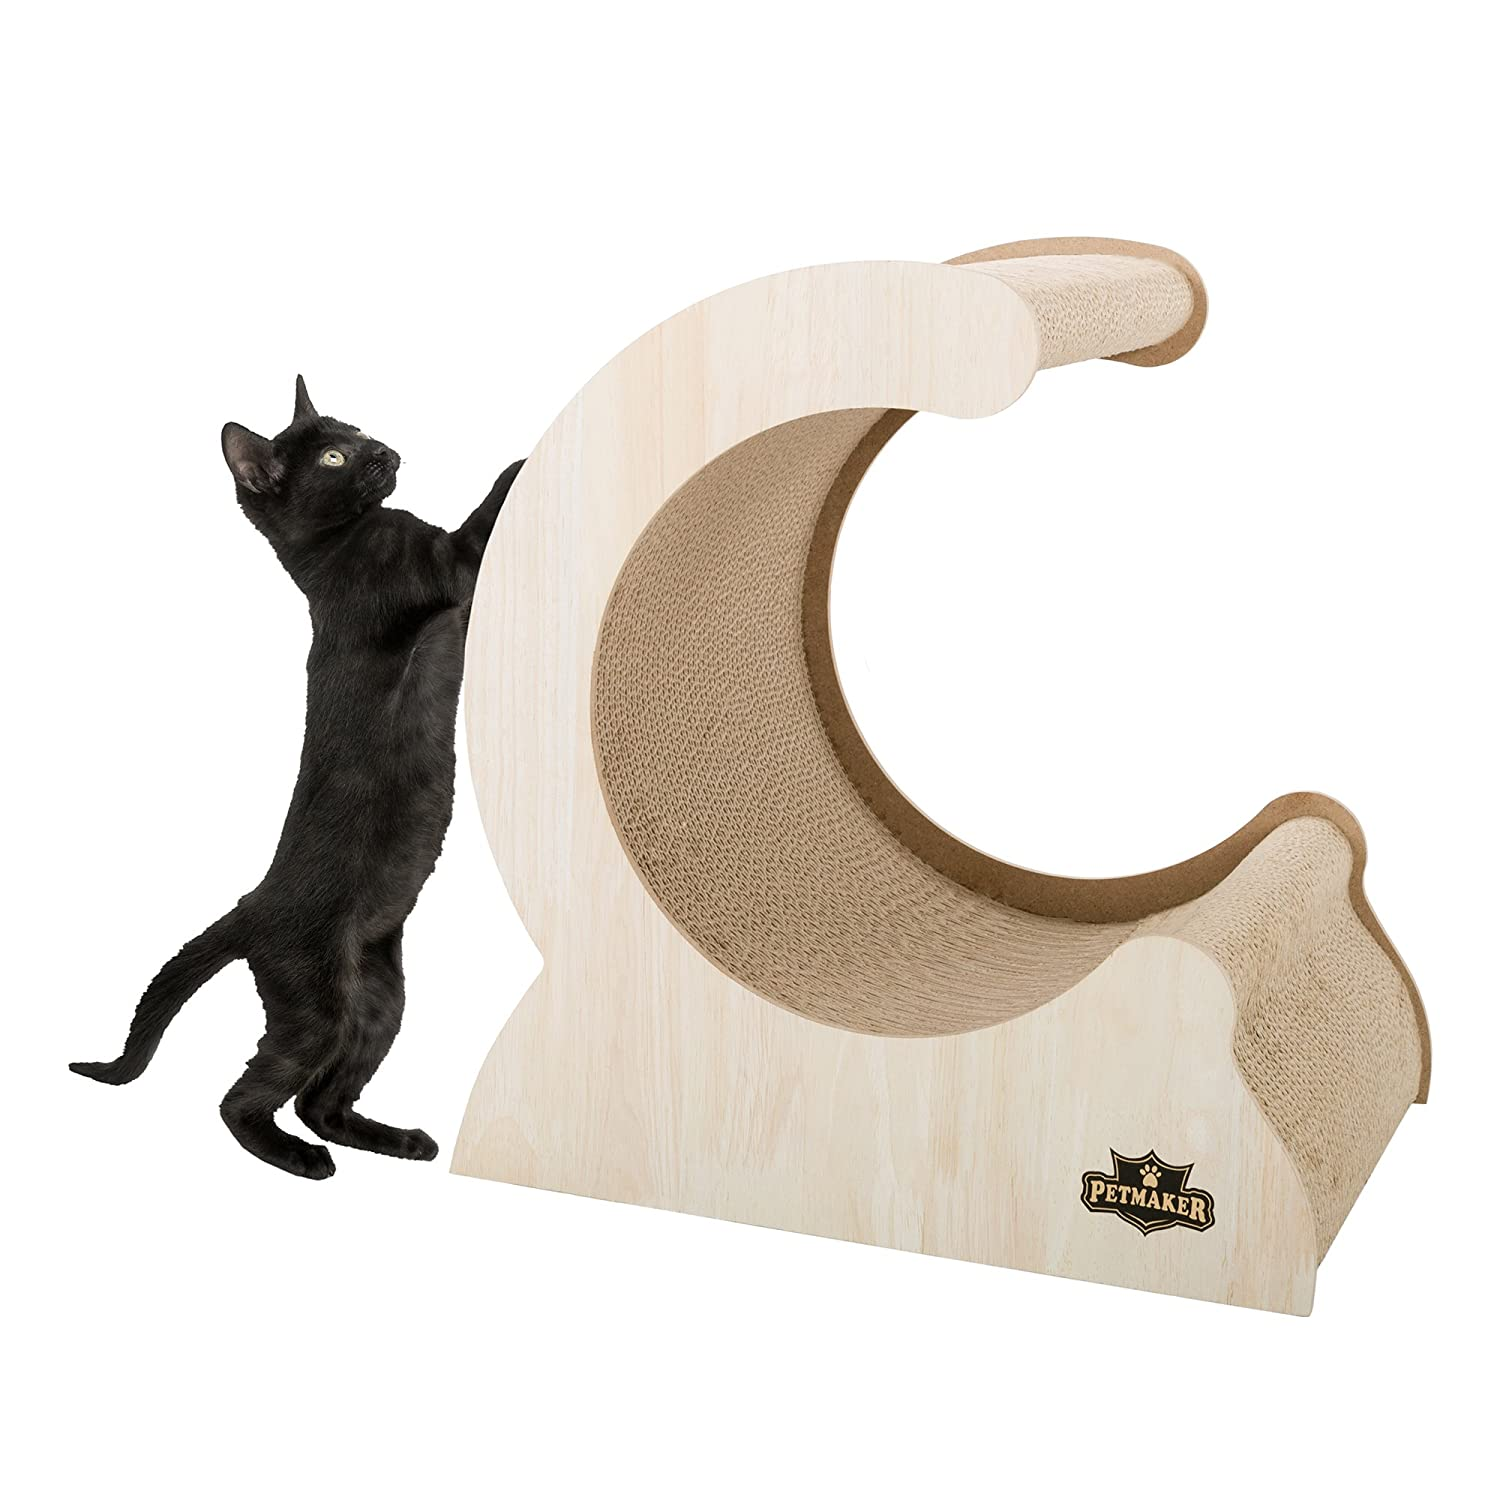 Cat Scratching Post- Wood and Cardboard Incline Vertical Scratcher Station for Kittens and Large Cats, Furniture Scratch Deterrent by PETMAKER